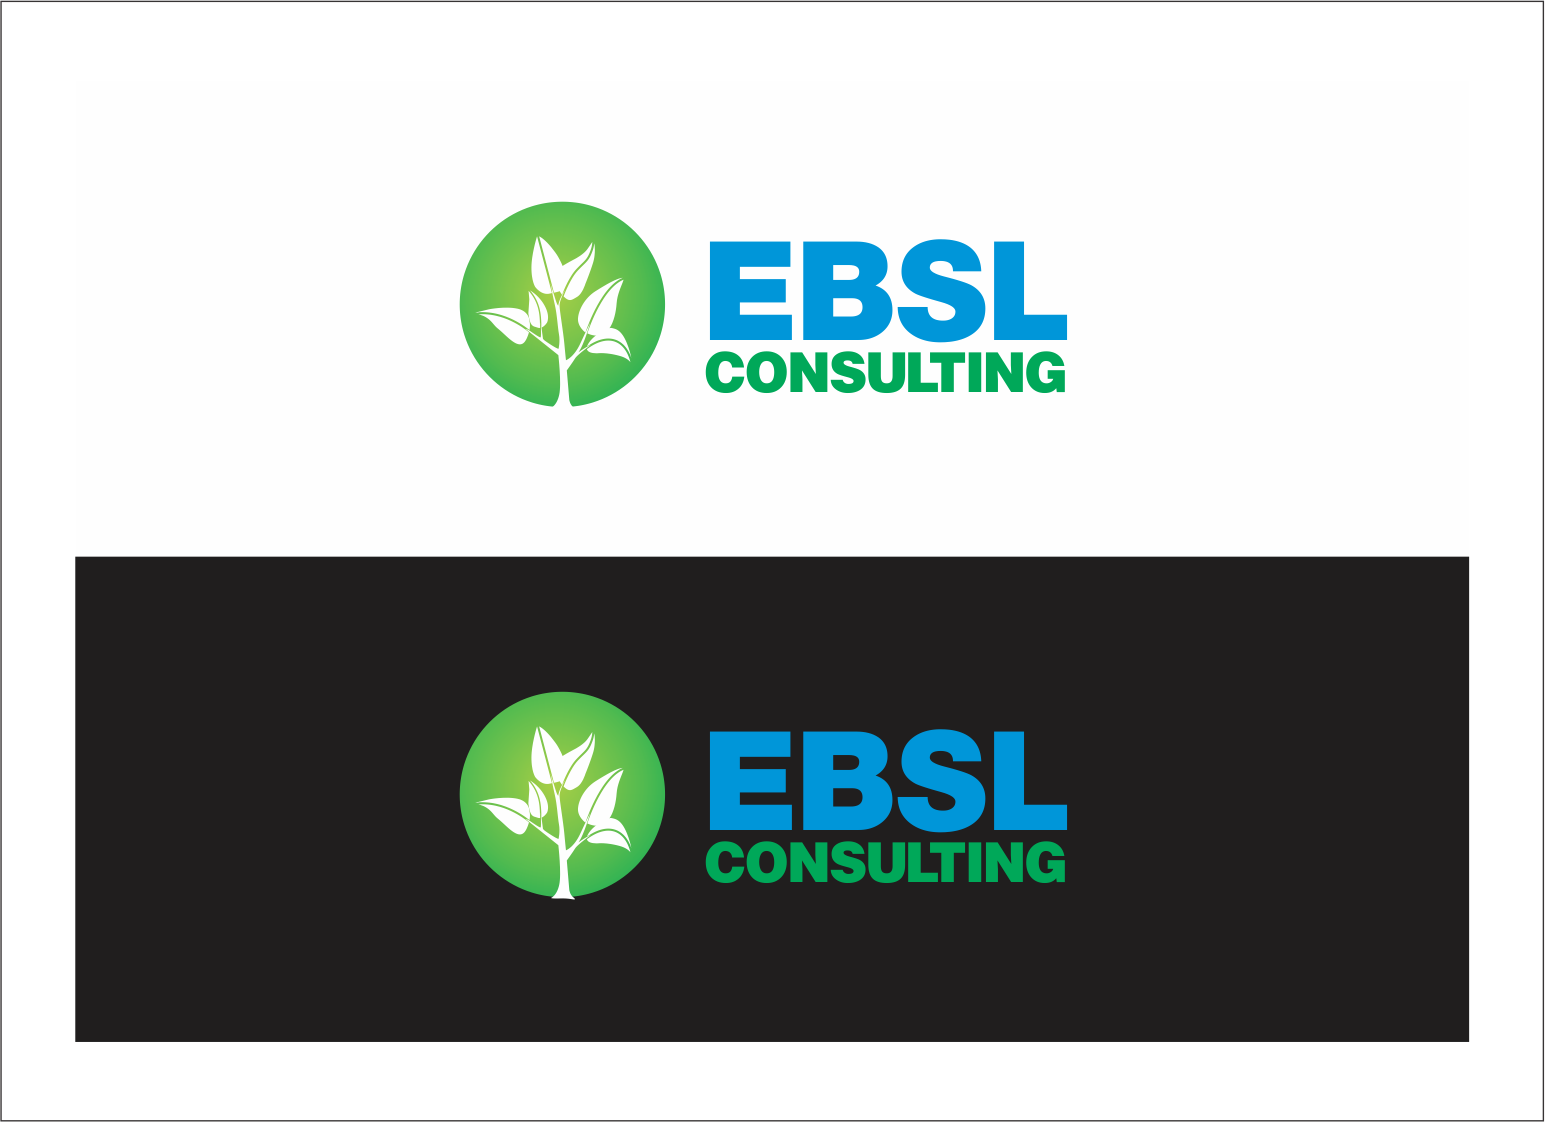 Logo Design by fathdesigner - Entry No. 125 in the Logo Design Contest EBSL Consulting Logo Design.